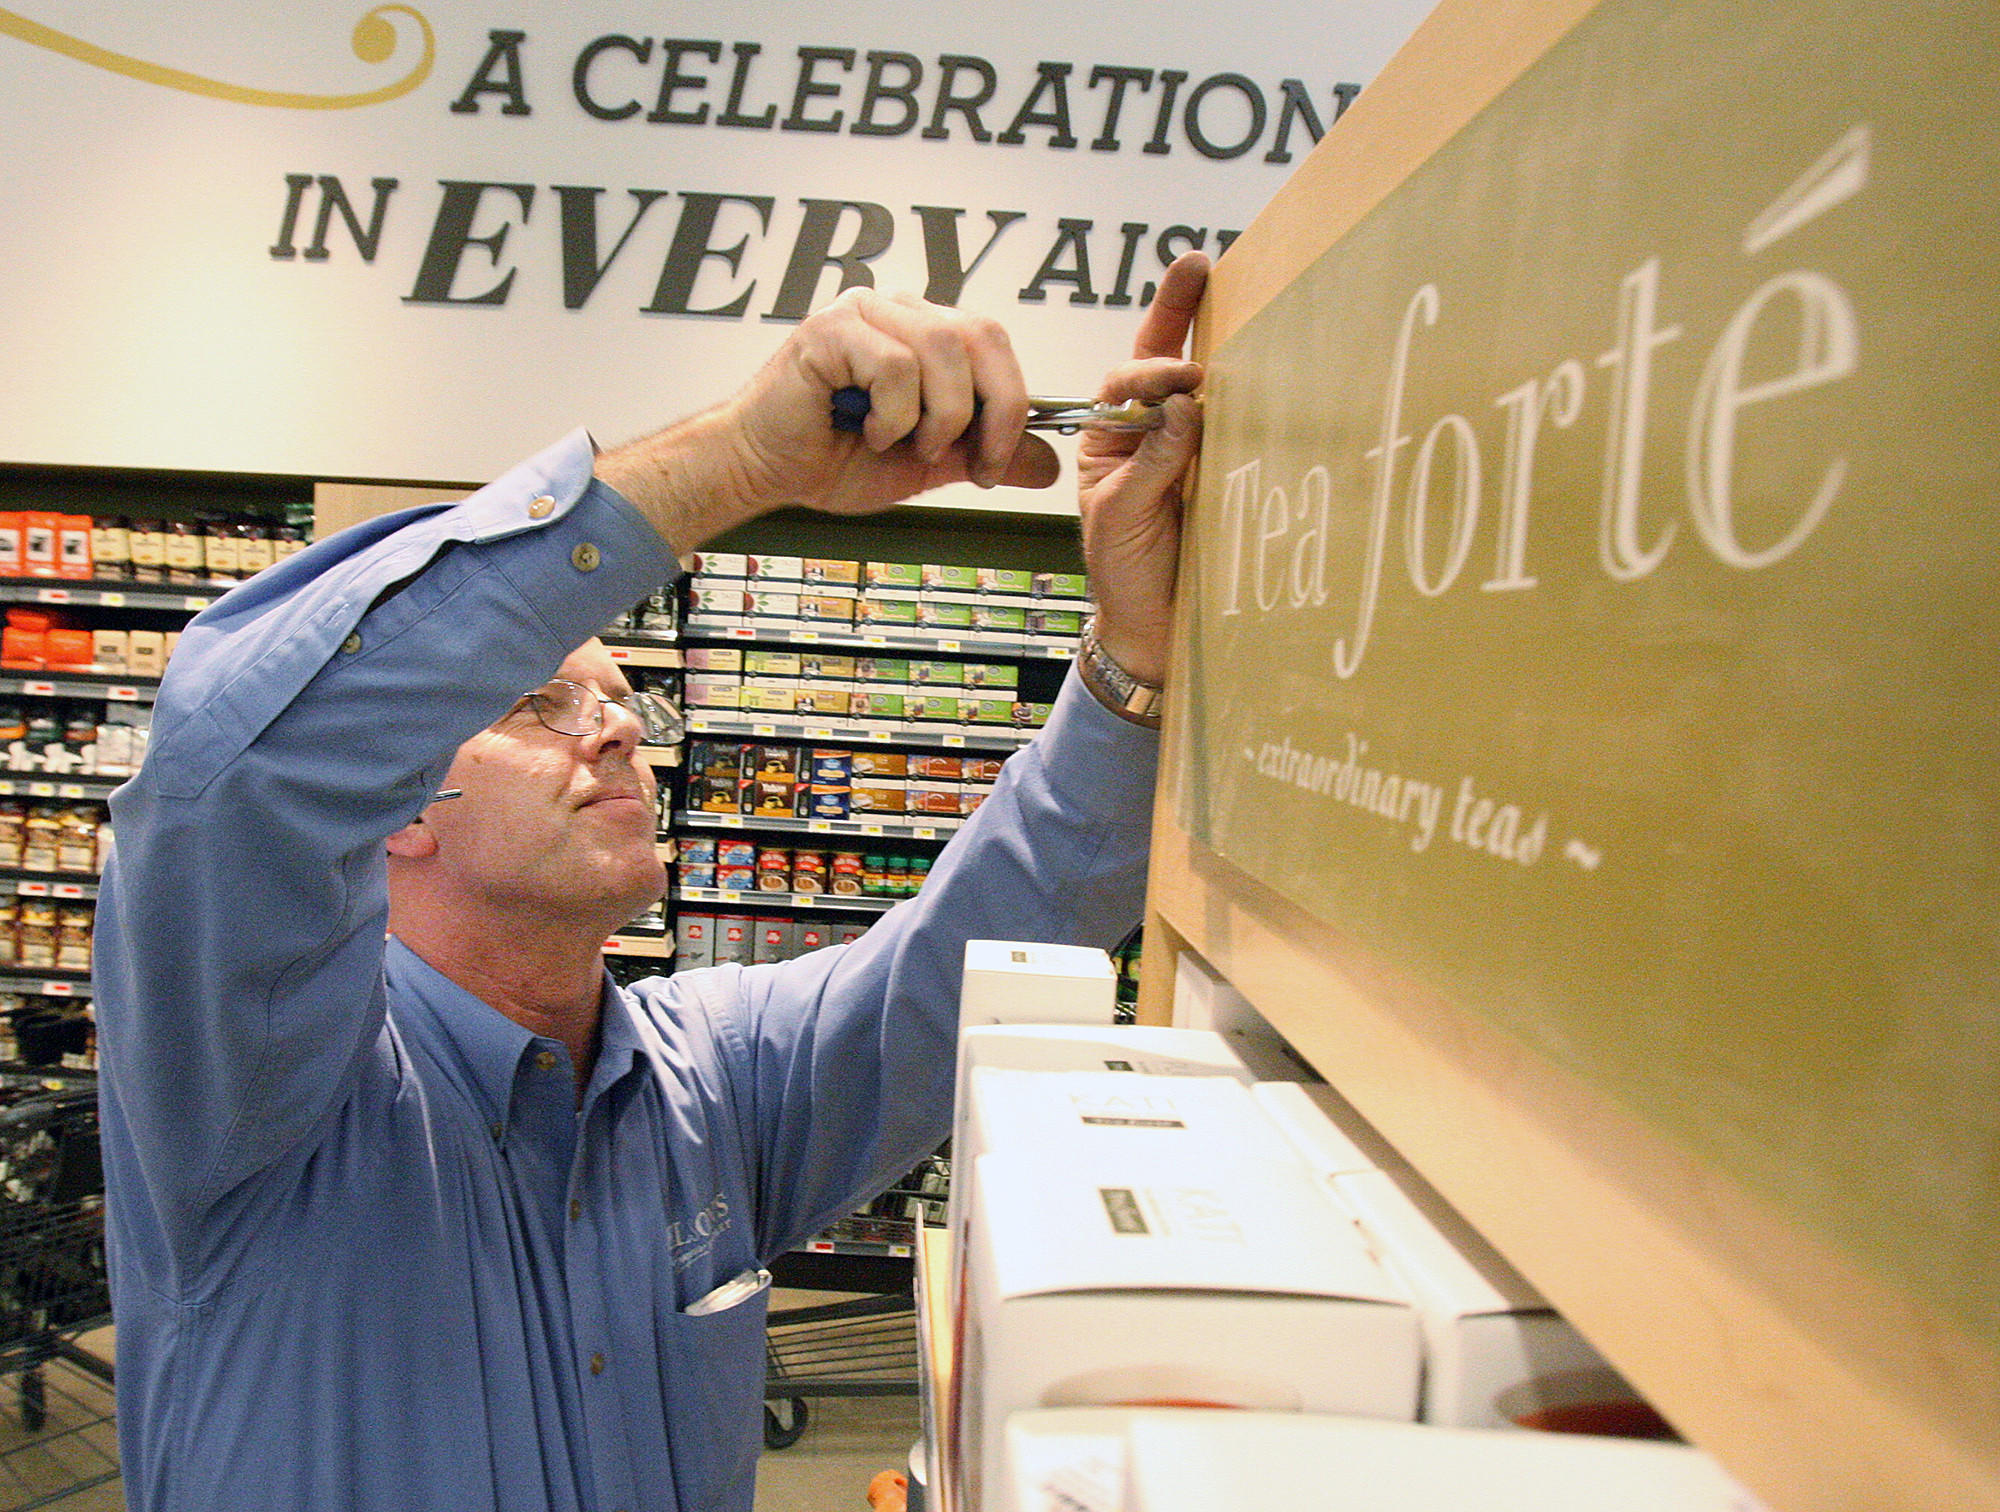 Merchandising manager Chris Kelley, who has worked with Gelson's for 29 years, fixes up the tea display at the store's new location in La Cañada Flintridge on Monday, March 24, 2014. The store will have its grand opening on March 27 at 9:00 A.M.